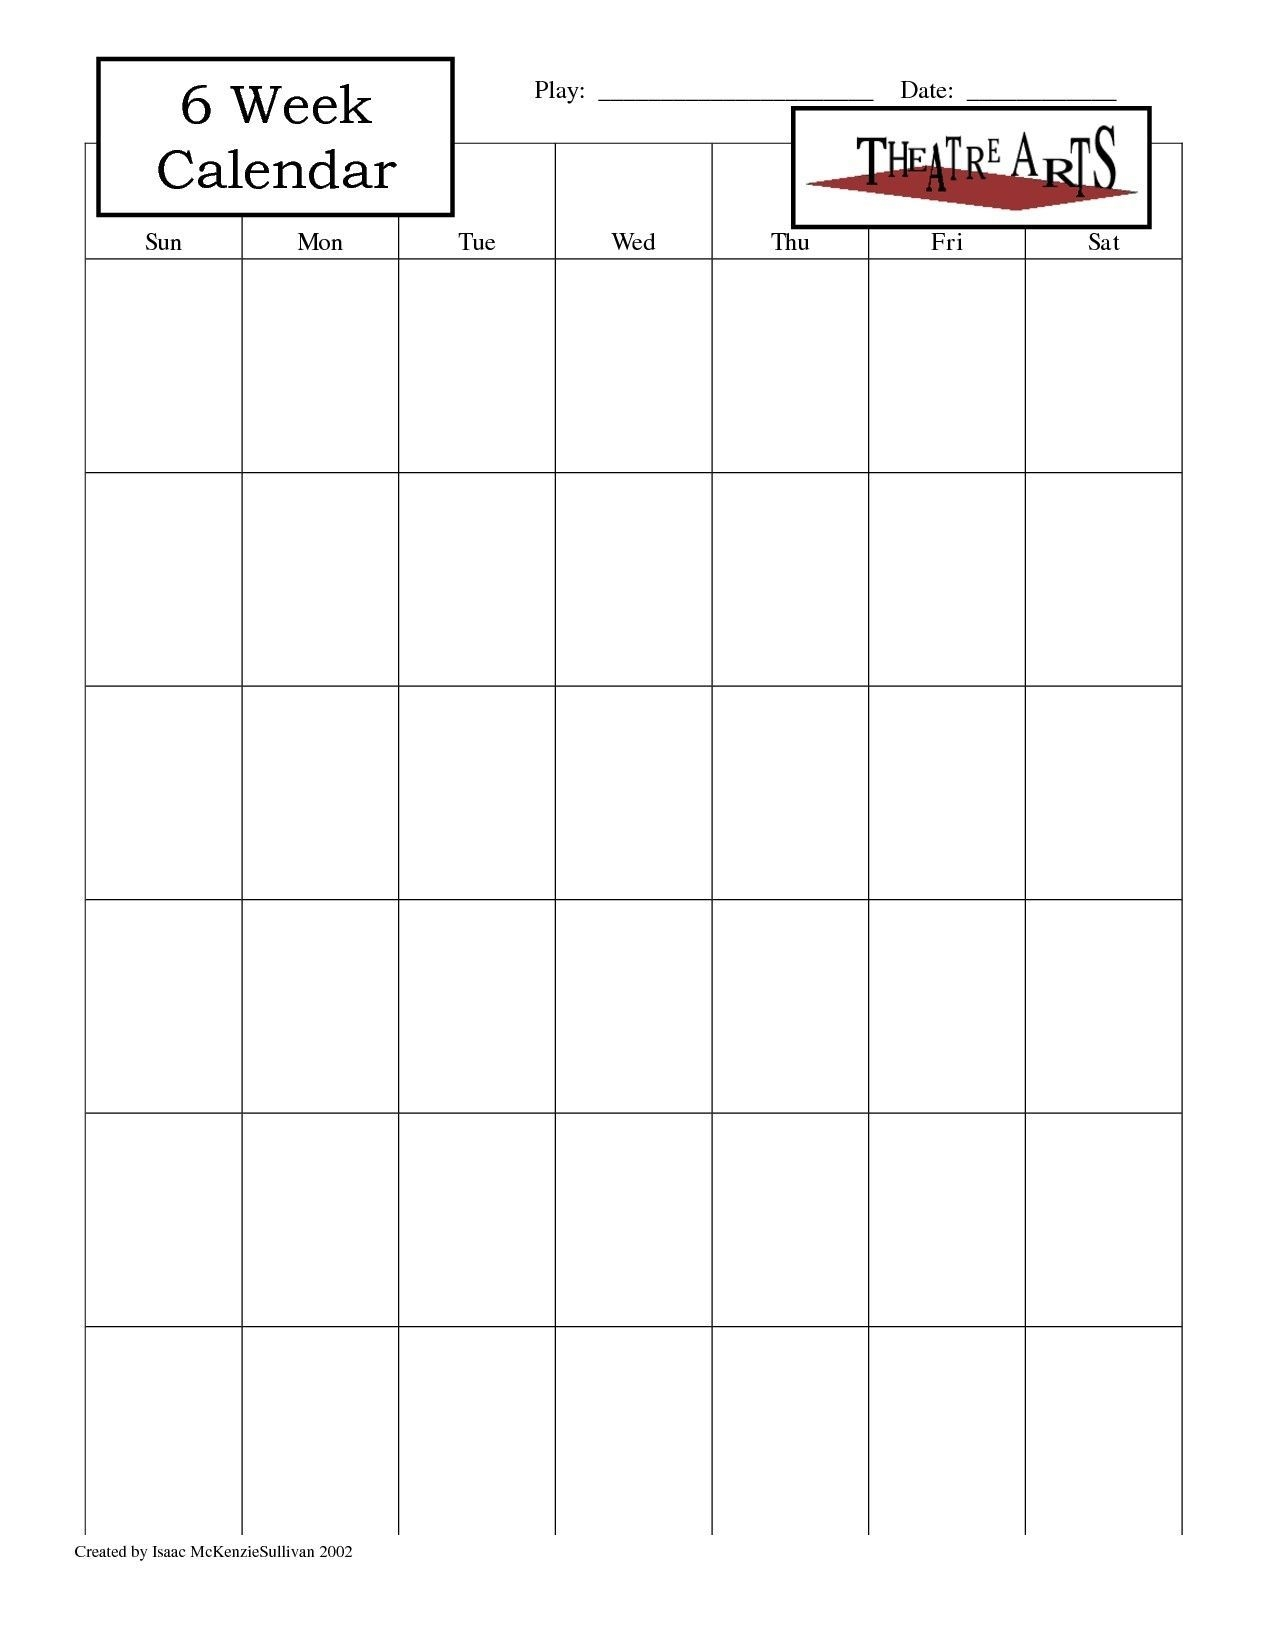 printable calendar 6 week in 2020 | printable blank calendar